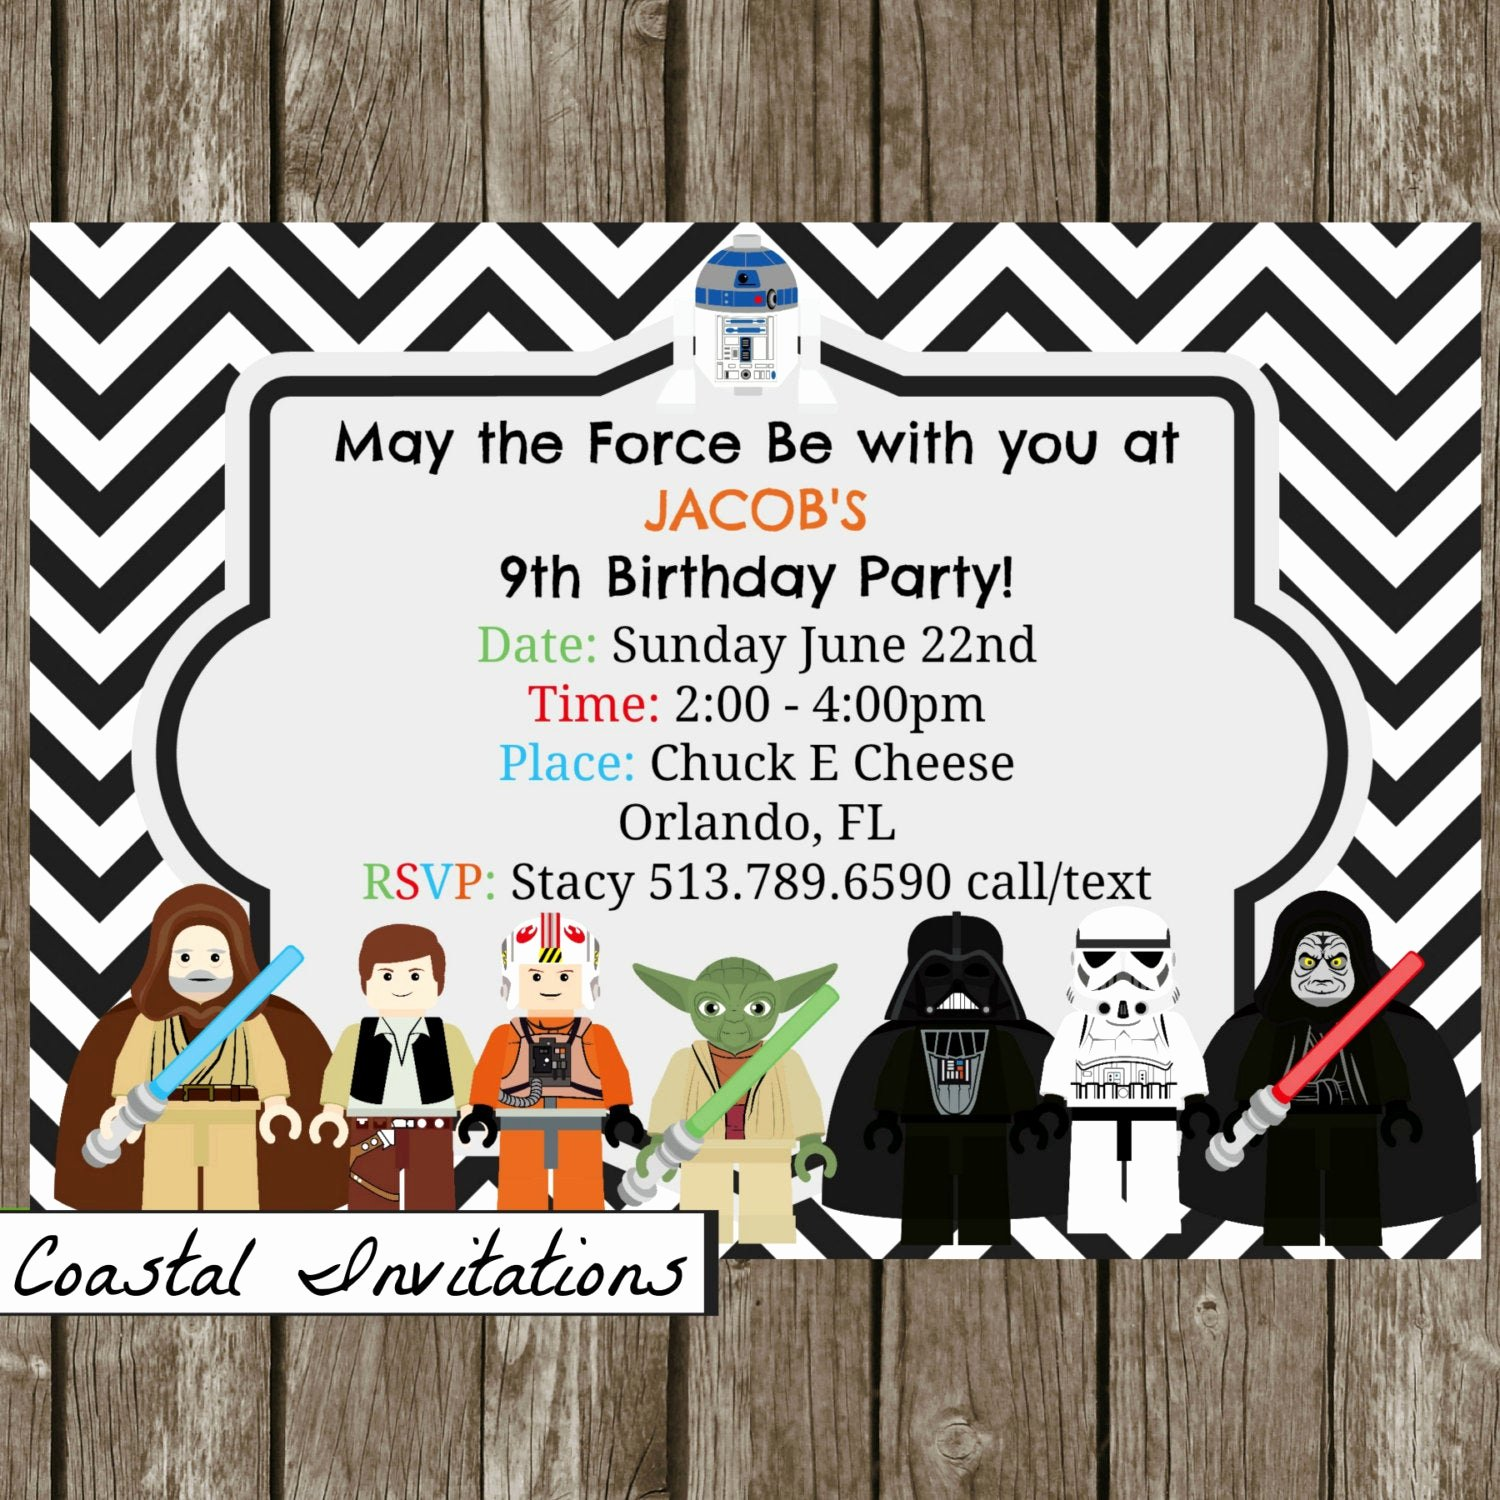 Lego Star Wars Party Invites Best Of Lego Star Wars Birthday Party Invitation by Coastalinvitations